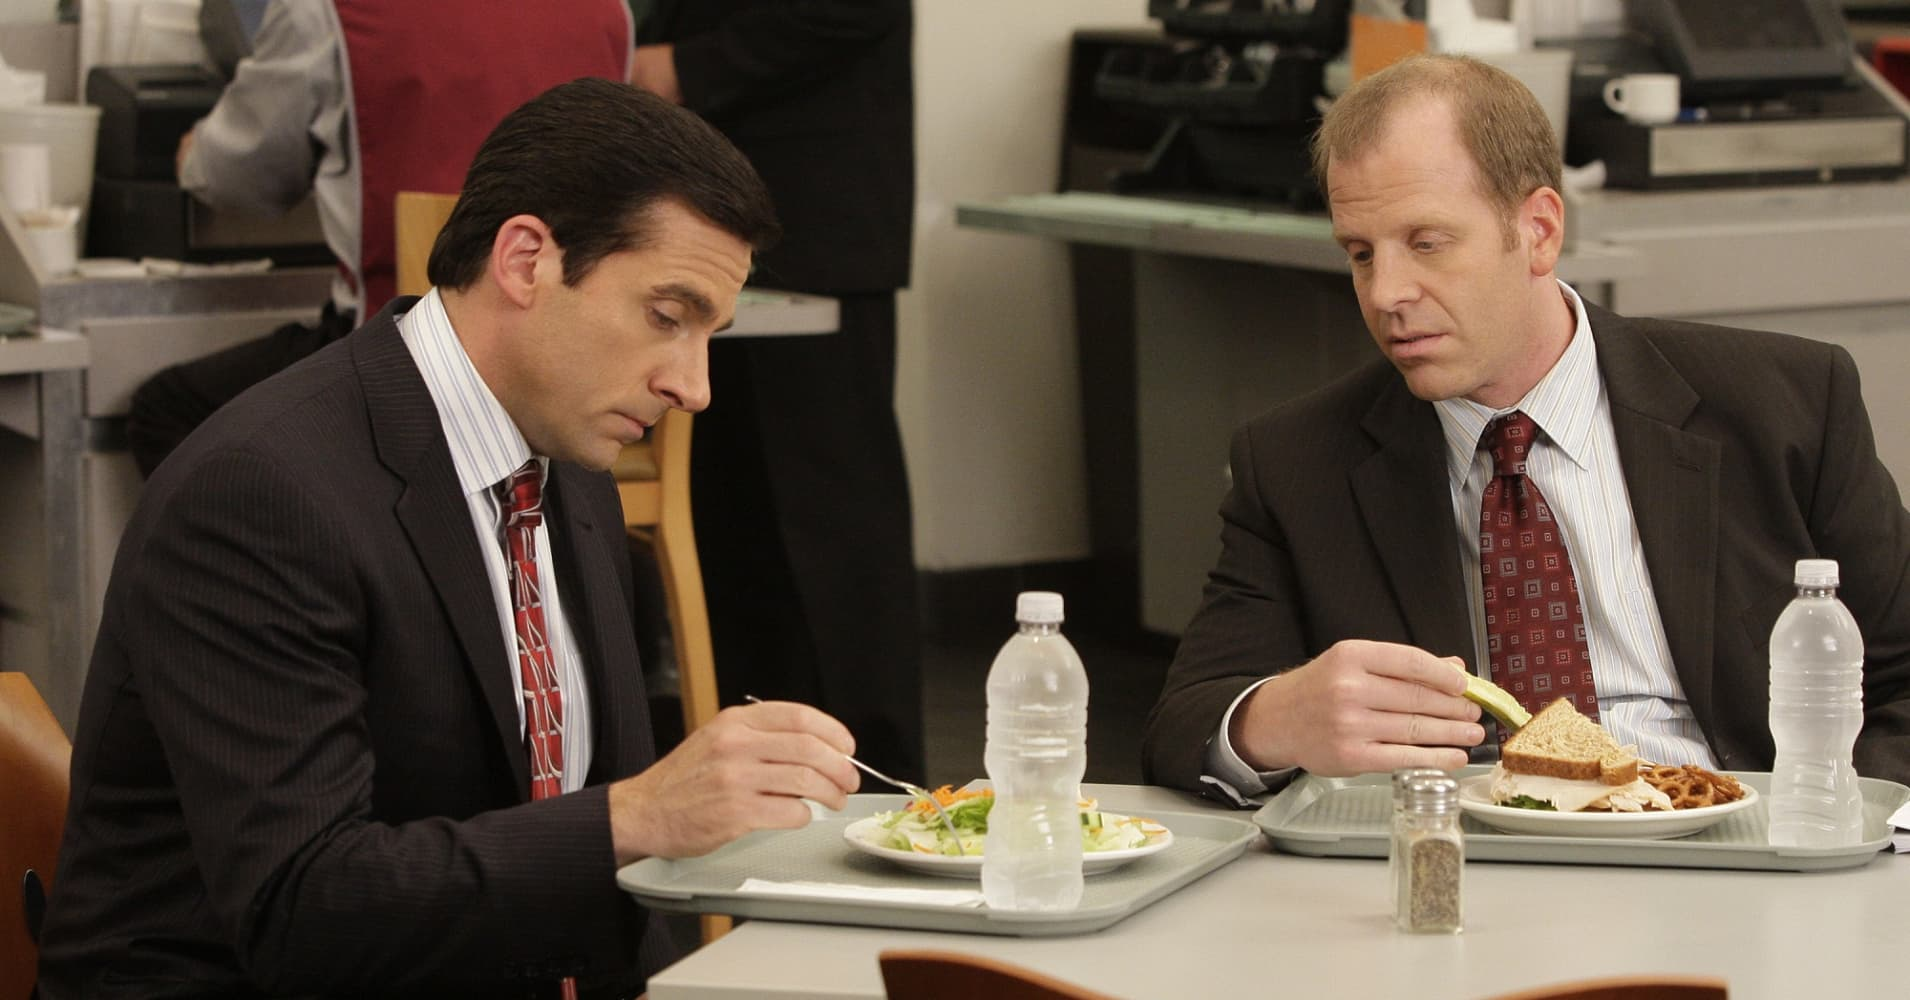 Steve Carell as Michael Scott and Paul Lieberstein as Toby Flenderson in The Office.